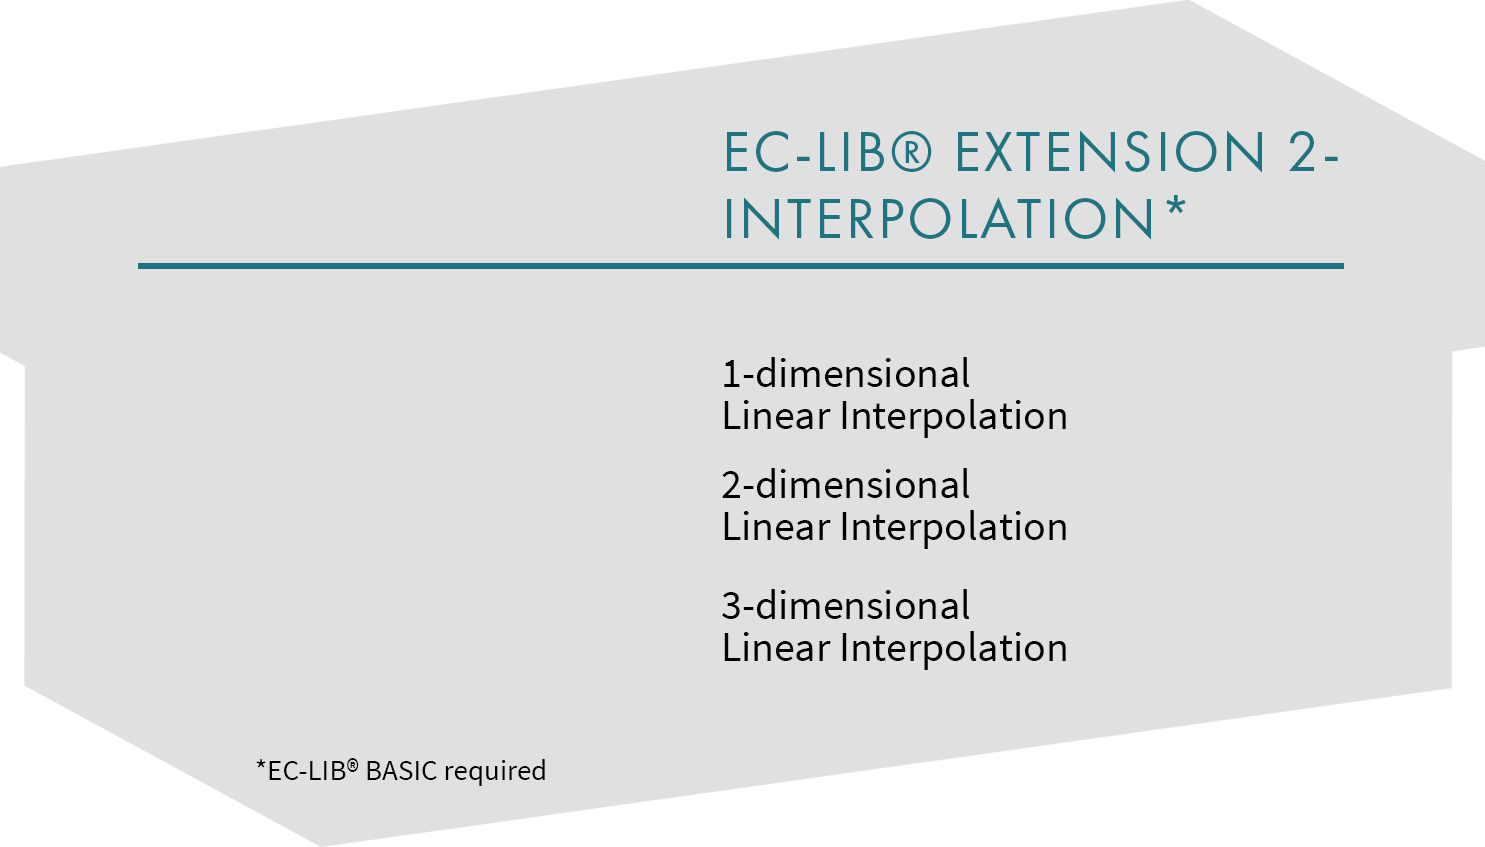 EC-LIB® Fixed Point Library Extension 2 Interpolation 1-dimensional Linear 2-dimensional Linear 3-dimensional Linear